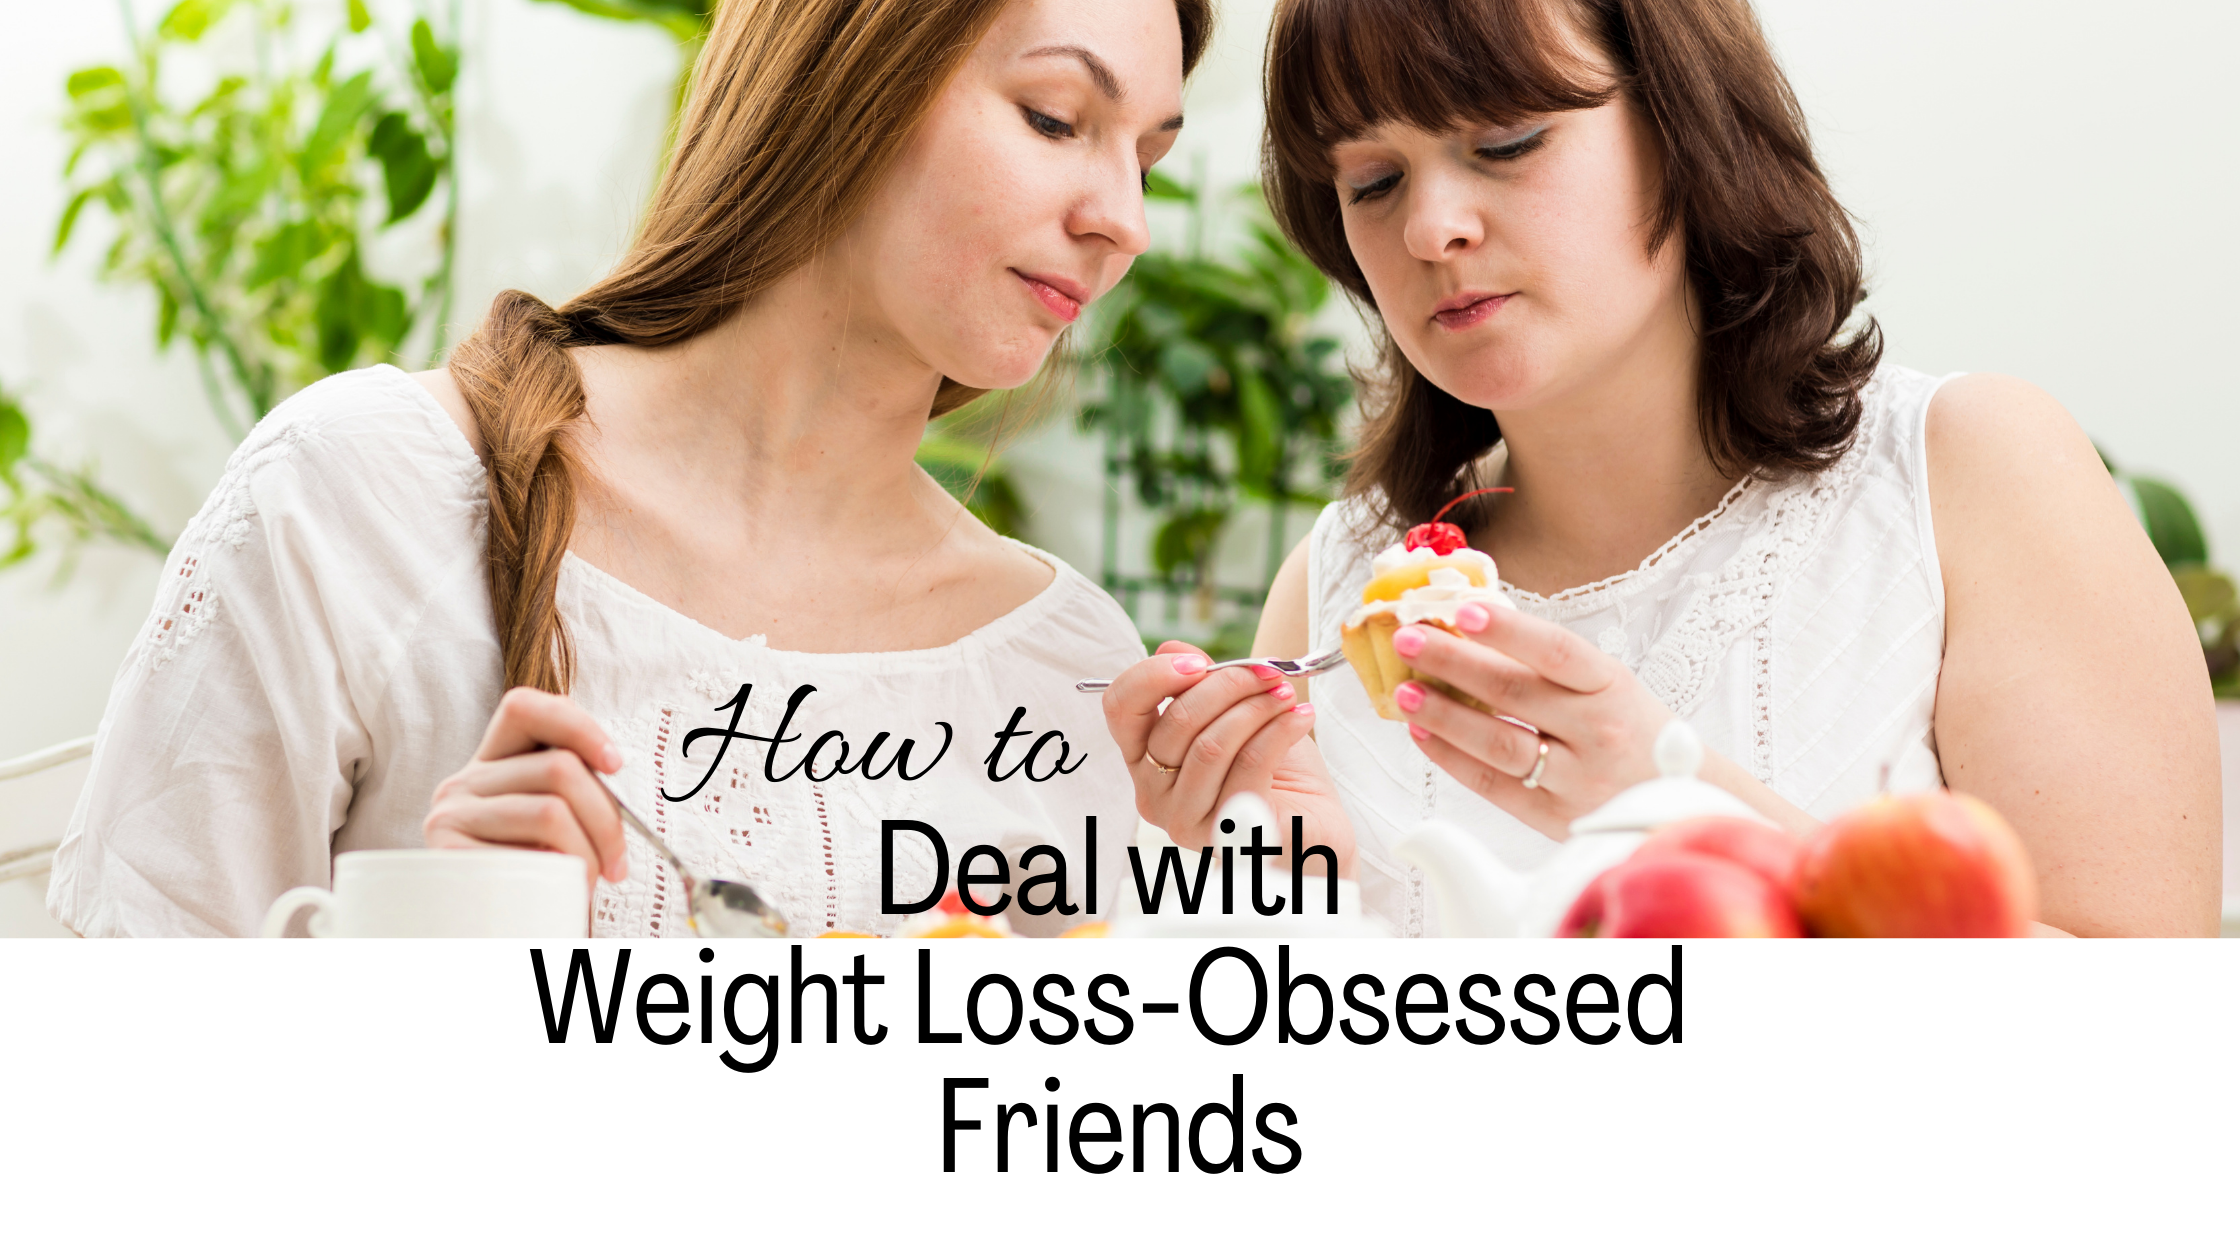 Woman judging other woman for her food choices and talking about her latest diet trend to lose weight. Title overlay of How to Deal with Weight Loss-Obsessed Friends.